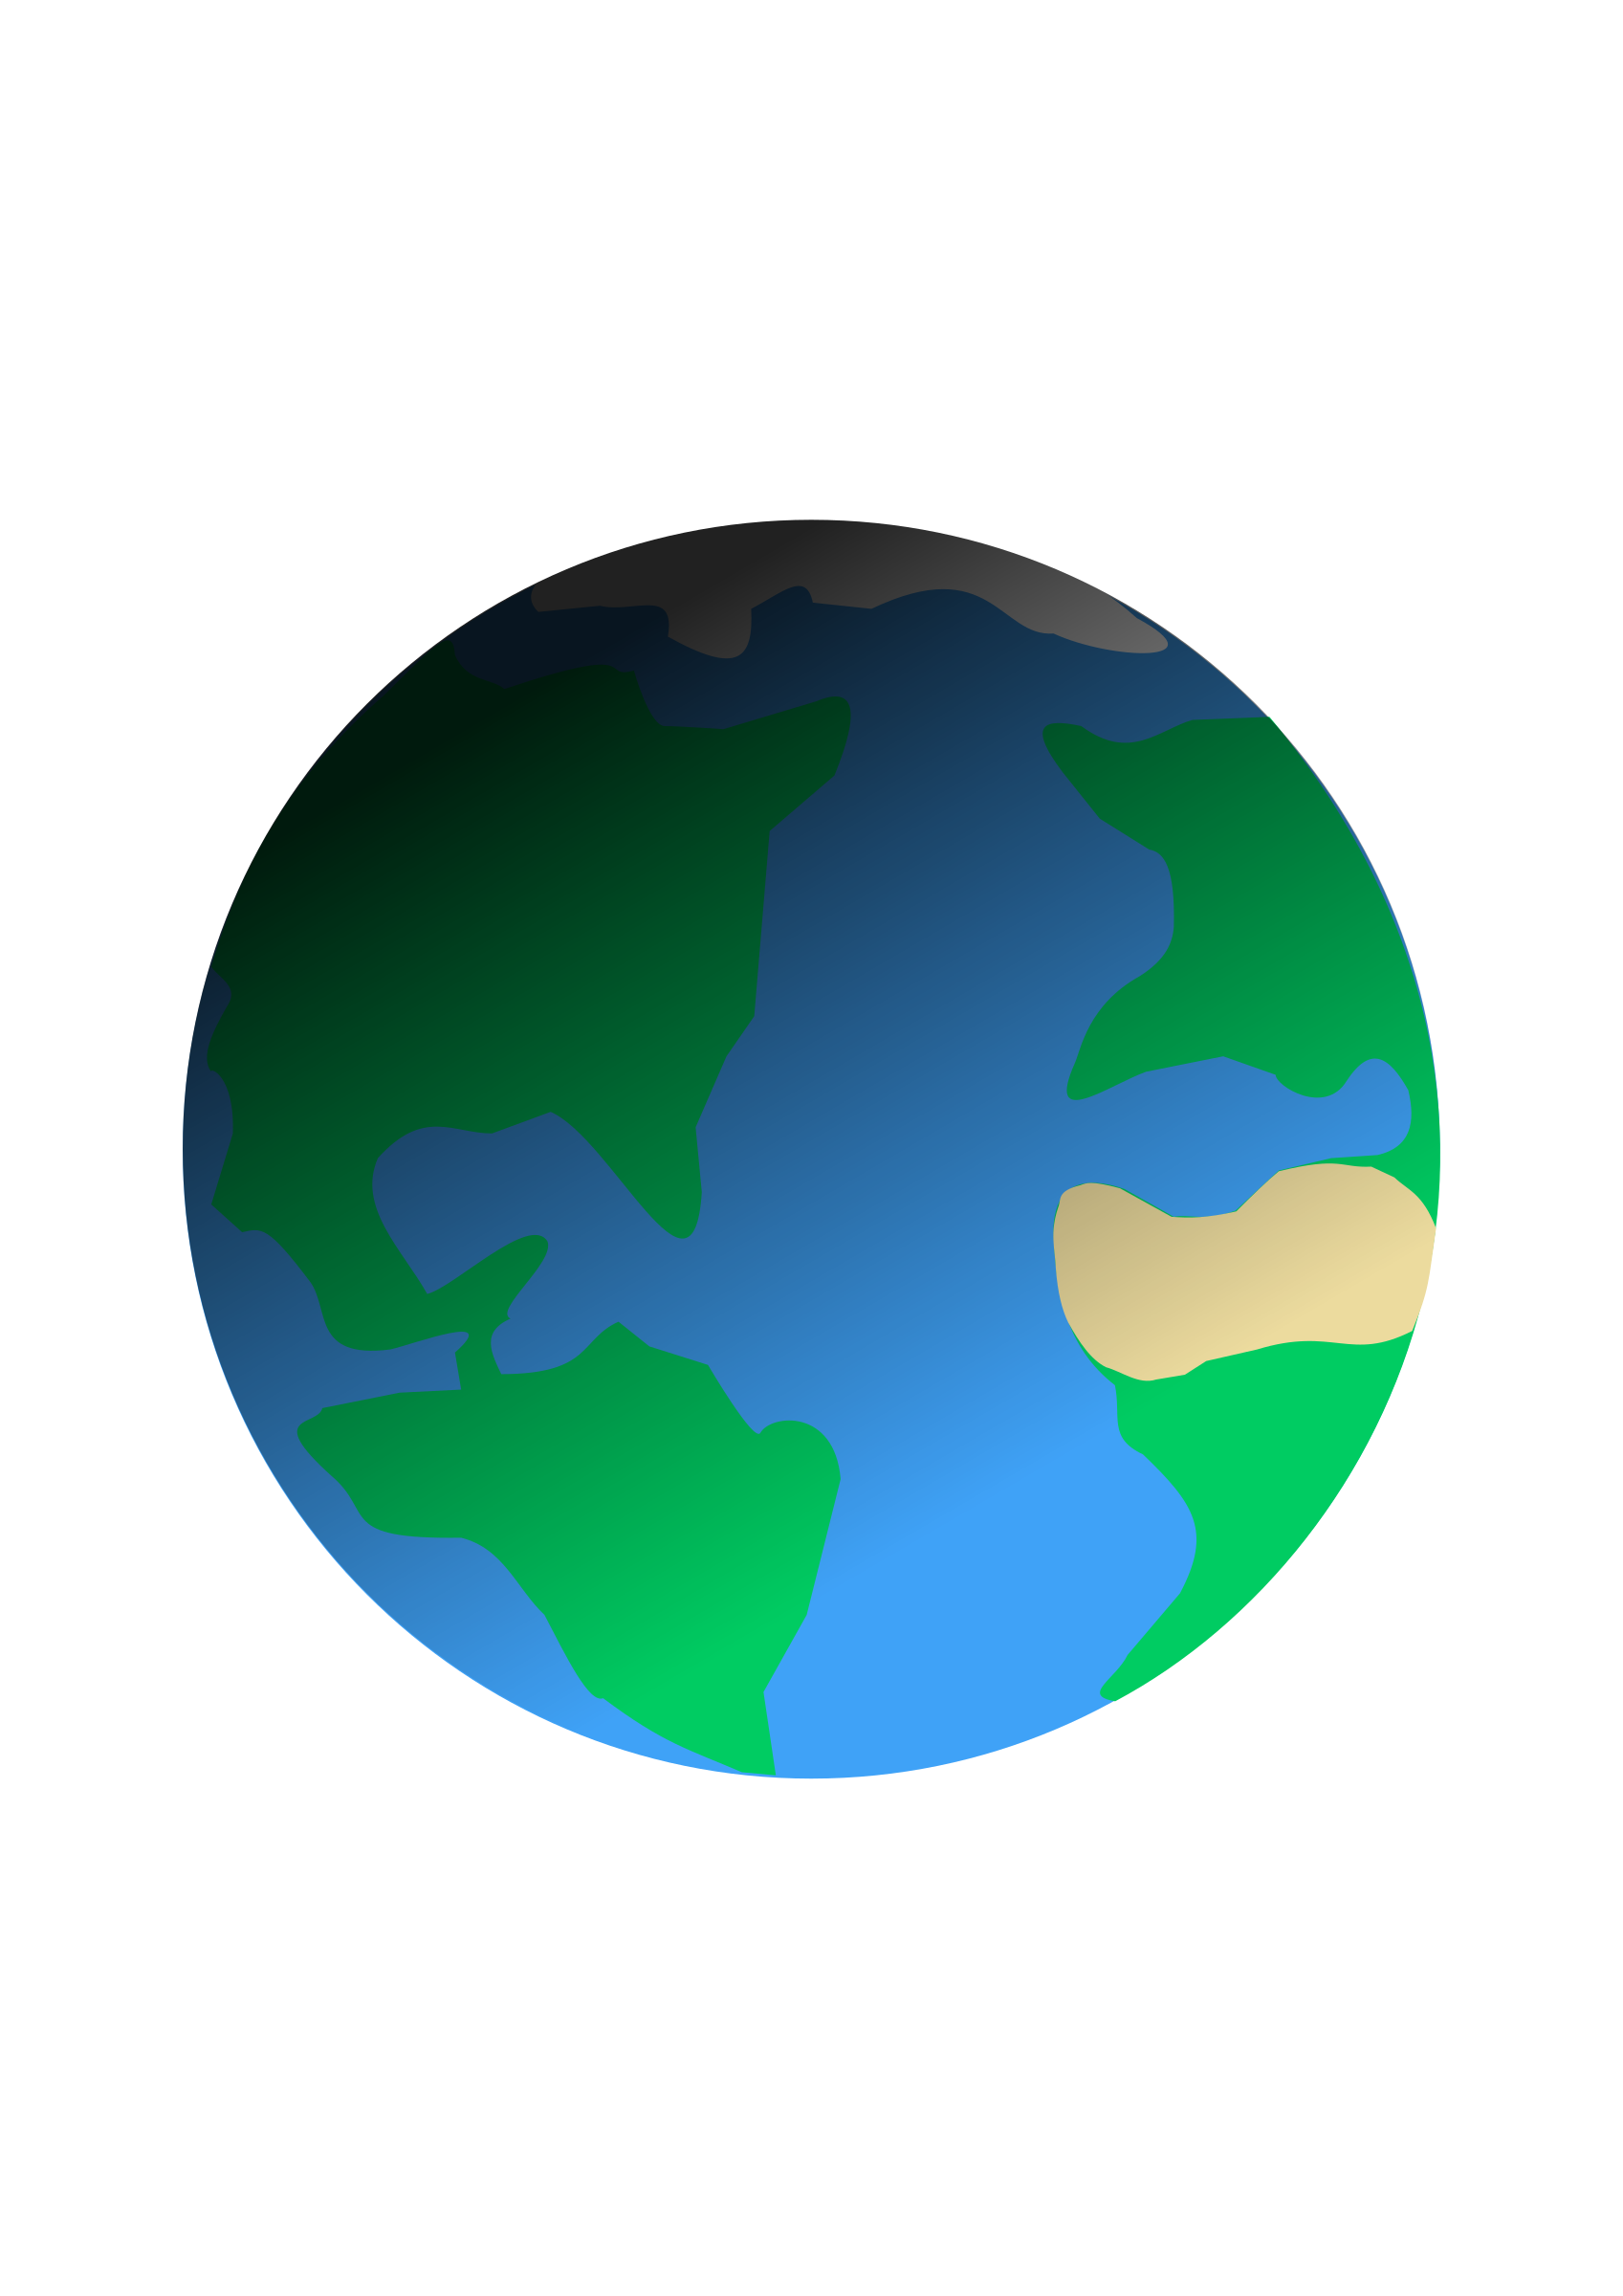 Planet clipart tierra. Earth big image png